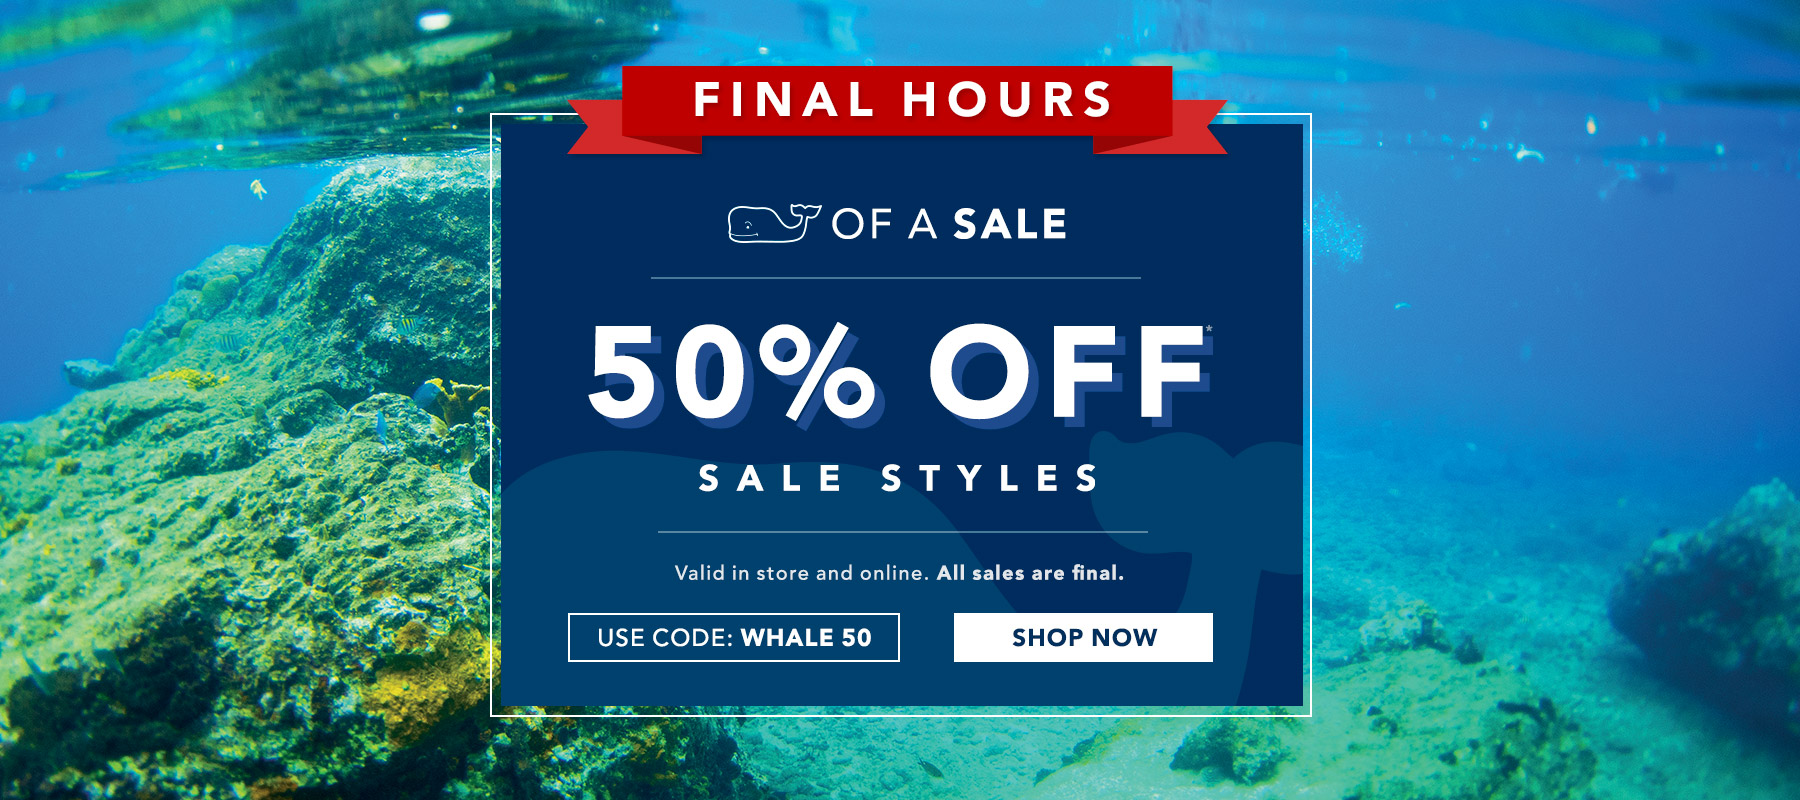 Final hours! Whale of a sale. Enjoy 50% off sale styles. Use code: WHALE50. Valid in store and online. All Sales Final. Shop now.